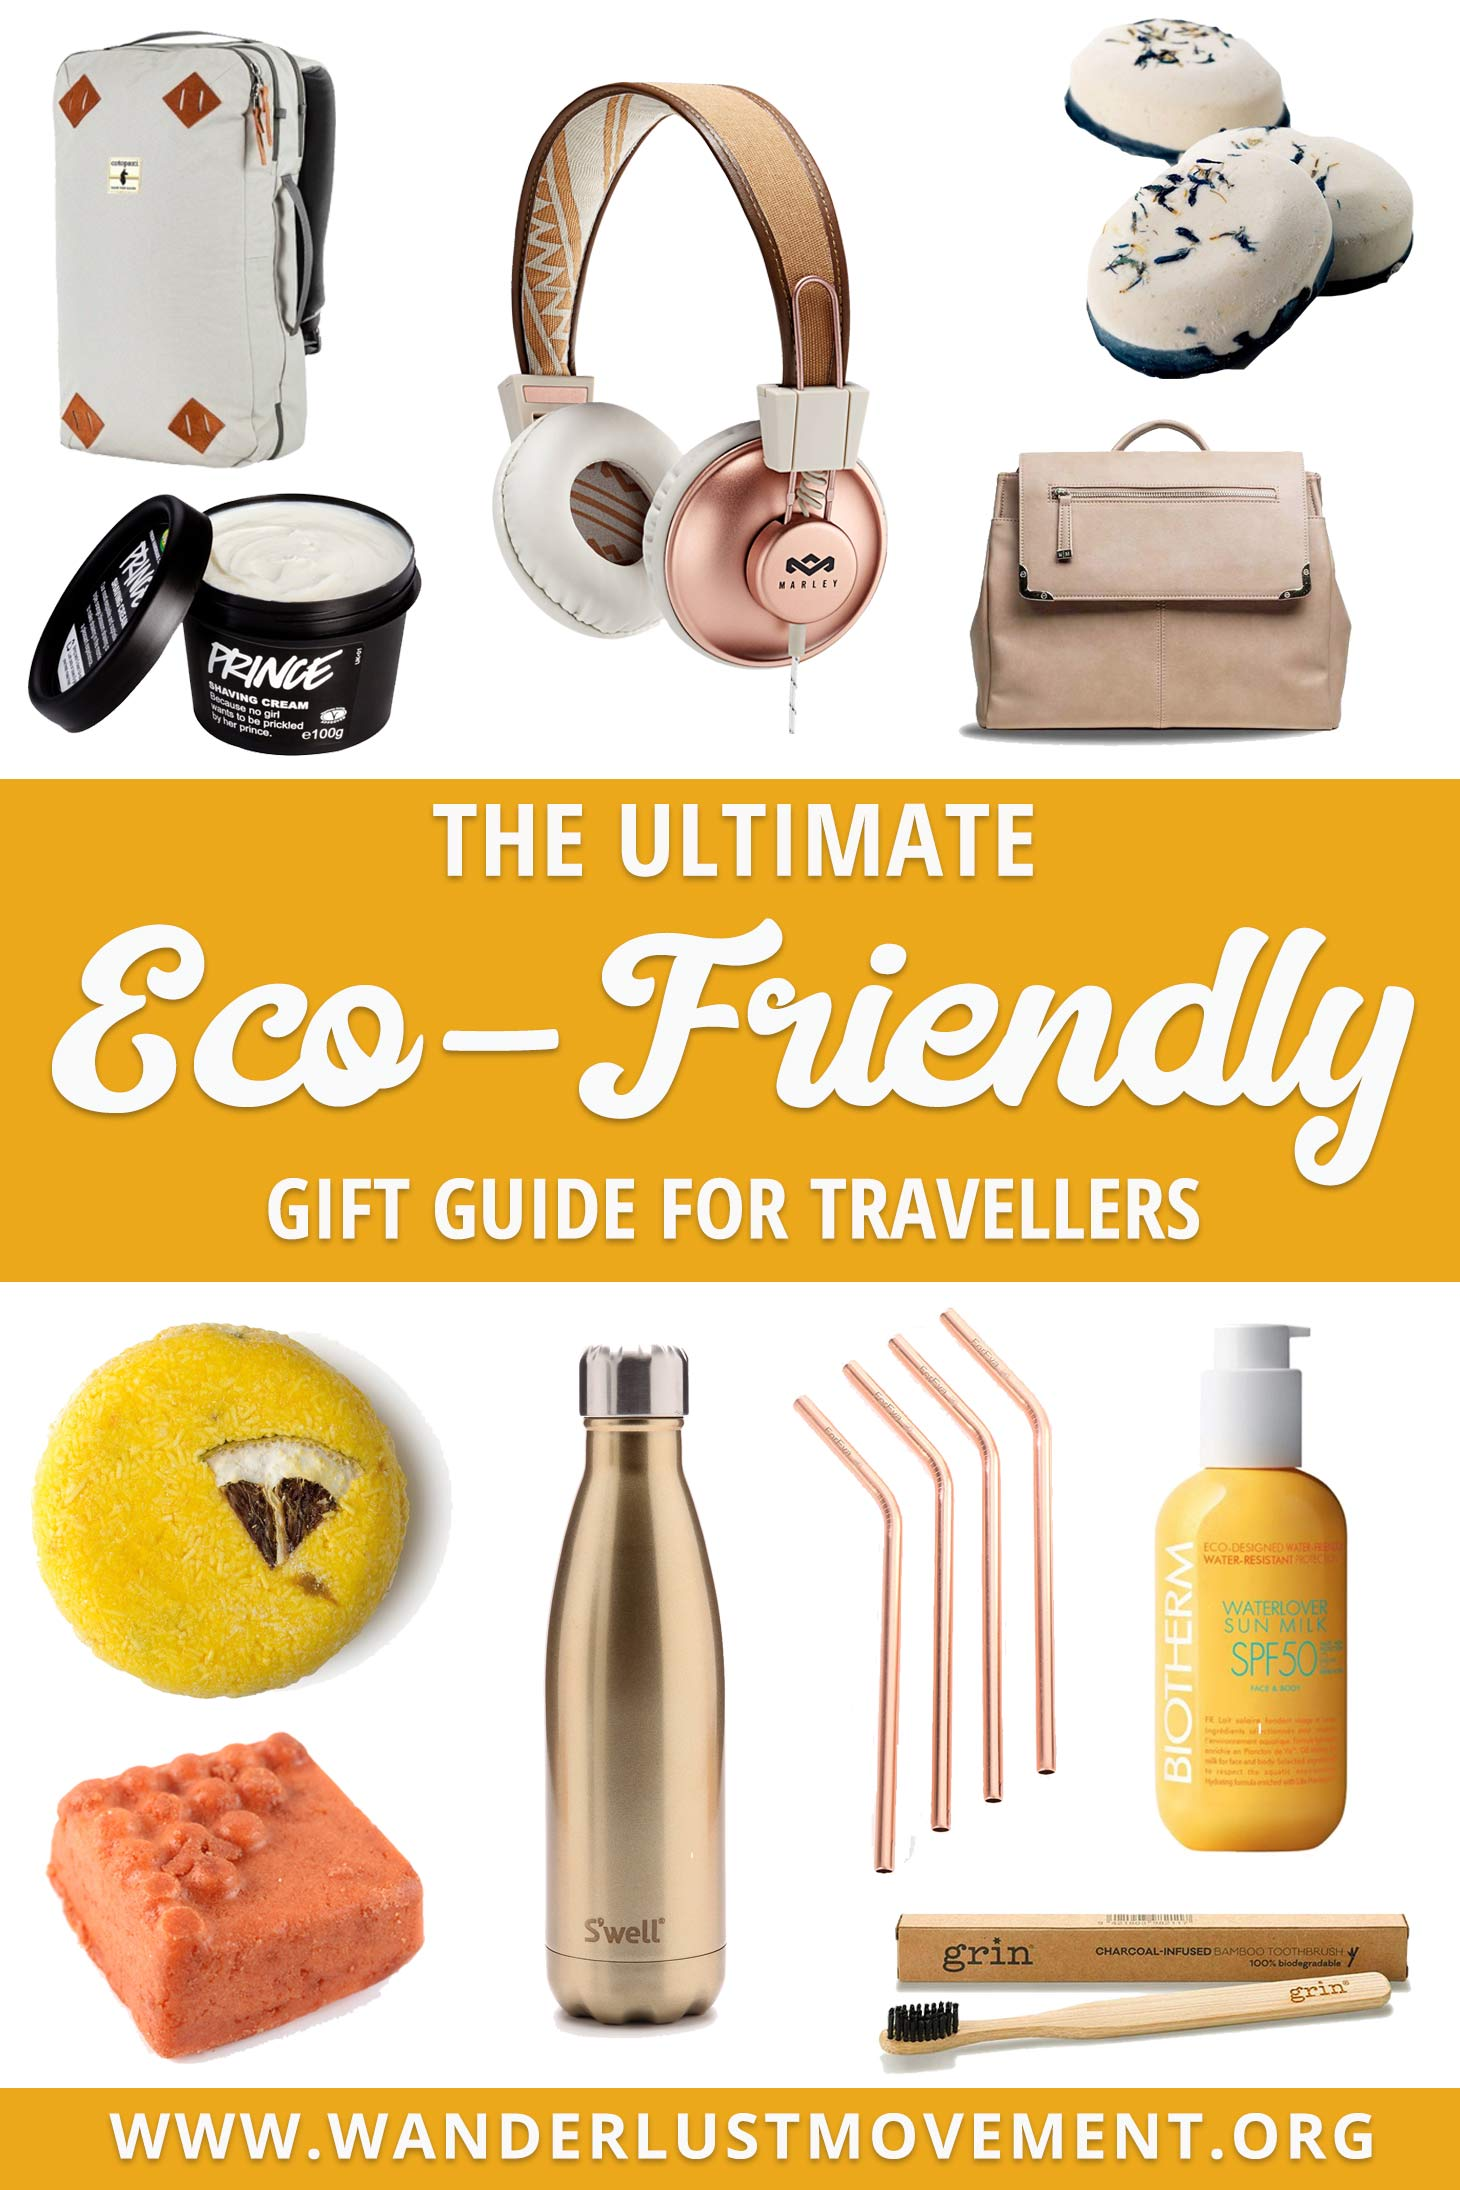 Searching for gifts that come with a low carbon footprint or zero waste? Not sure what to get the budding environmentalist/traveller in your life? I got ya back gurl. Here\'s my eco-friendly gift guide!| Eco-friendly Gifts | Eco-friendly Gift Ideas | Gift guide for her |#giftguides #zerowaste #traveltips